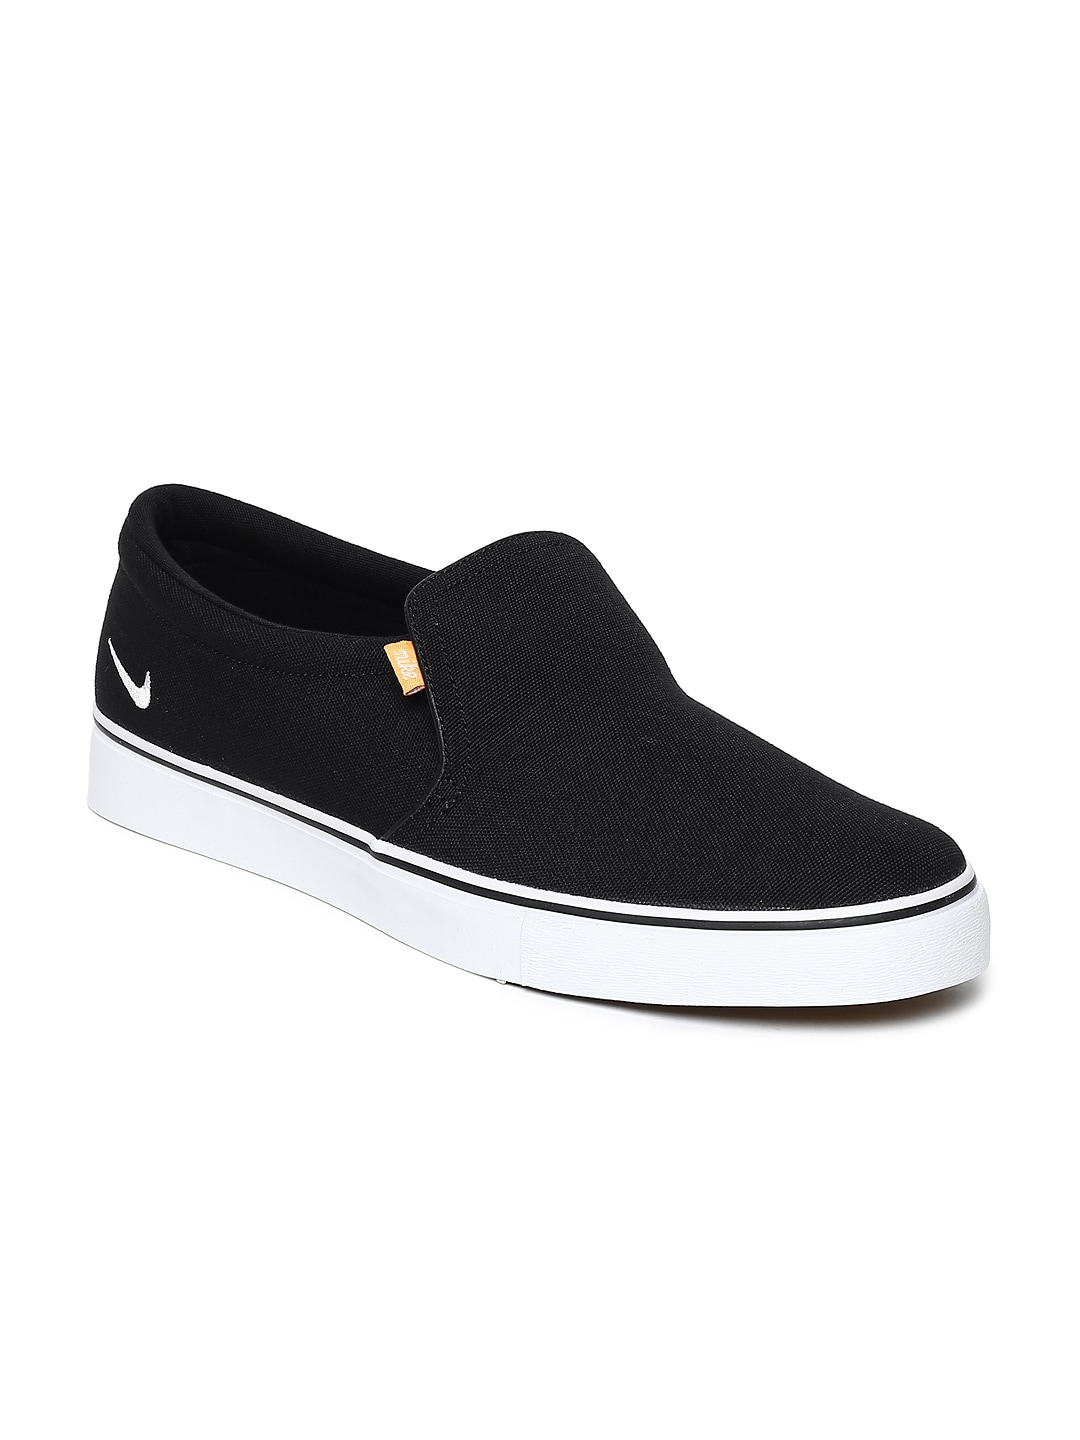 best website 117db 3f051 Nike Men Black Casual Shoes - Buy Nike Men Black Casual Shoes online in  India